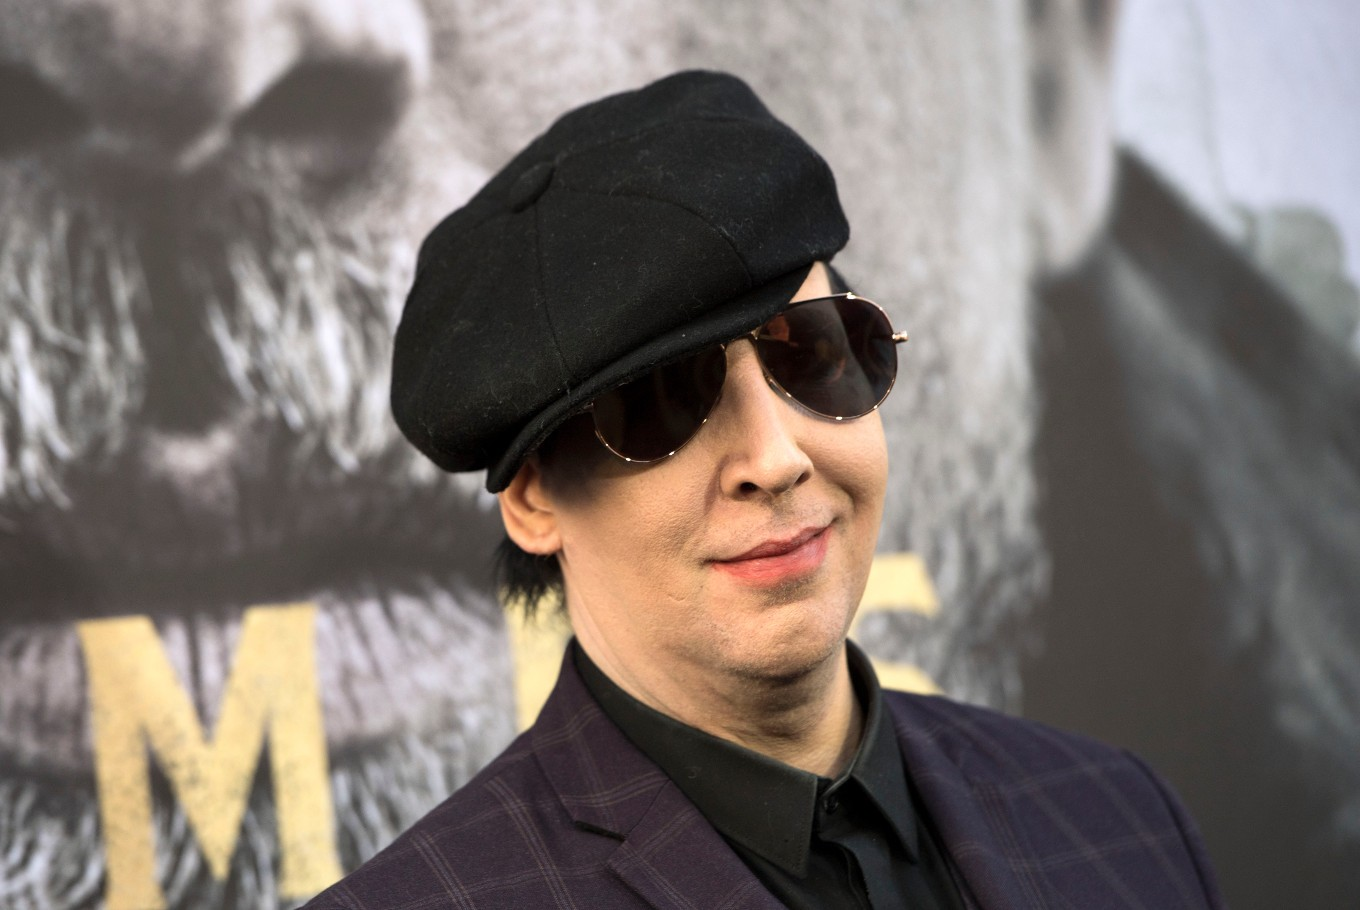 Los Angeles police probe Marilyn Manson violence allegations